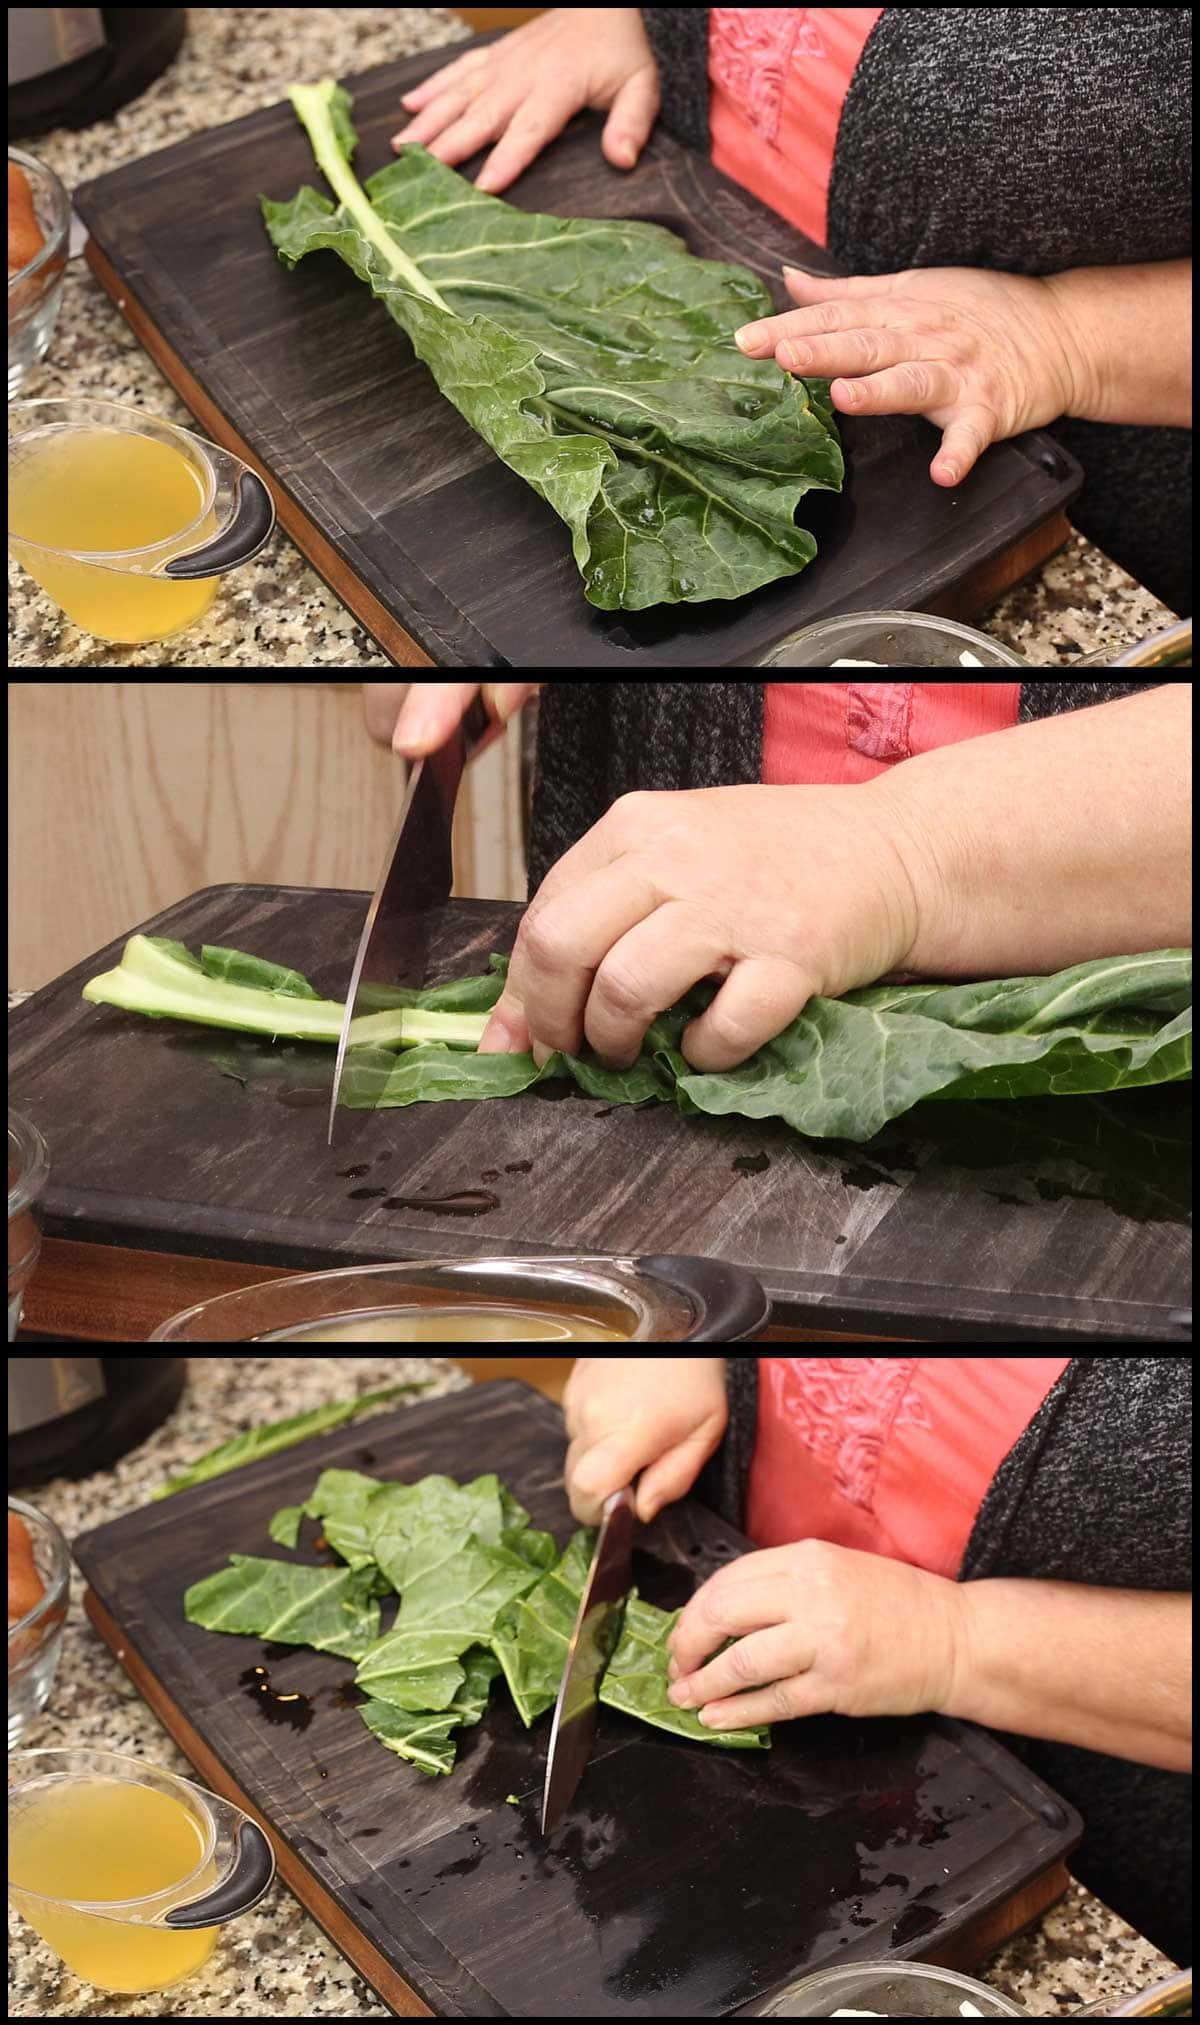 cutting the collard greens into 4 inch pieces